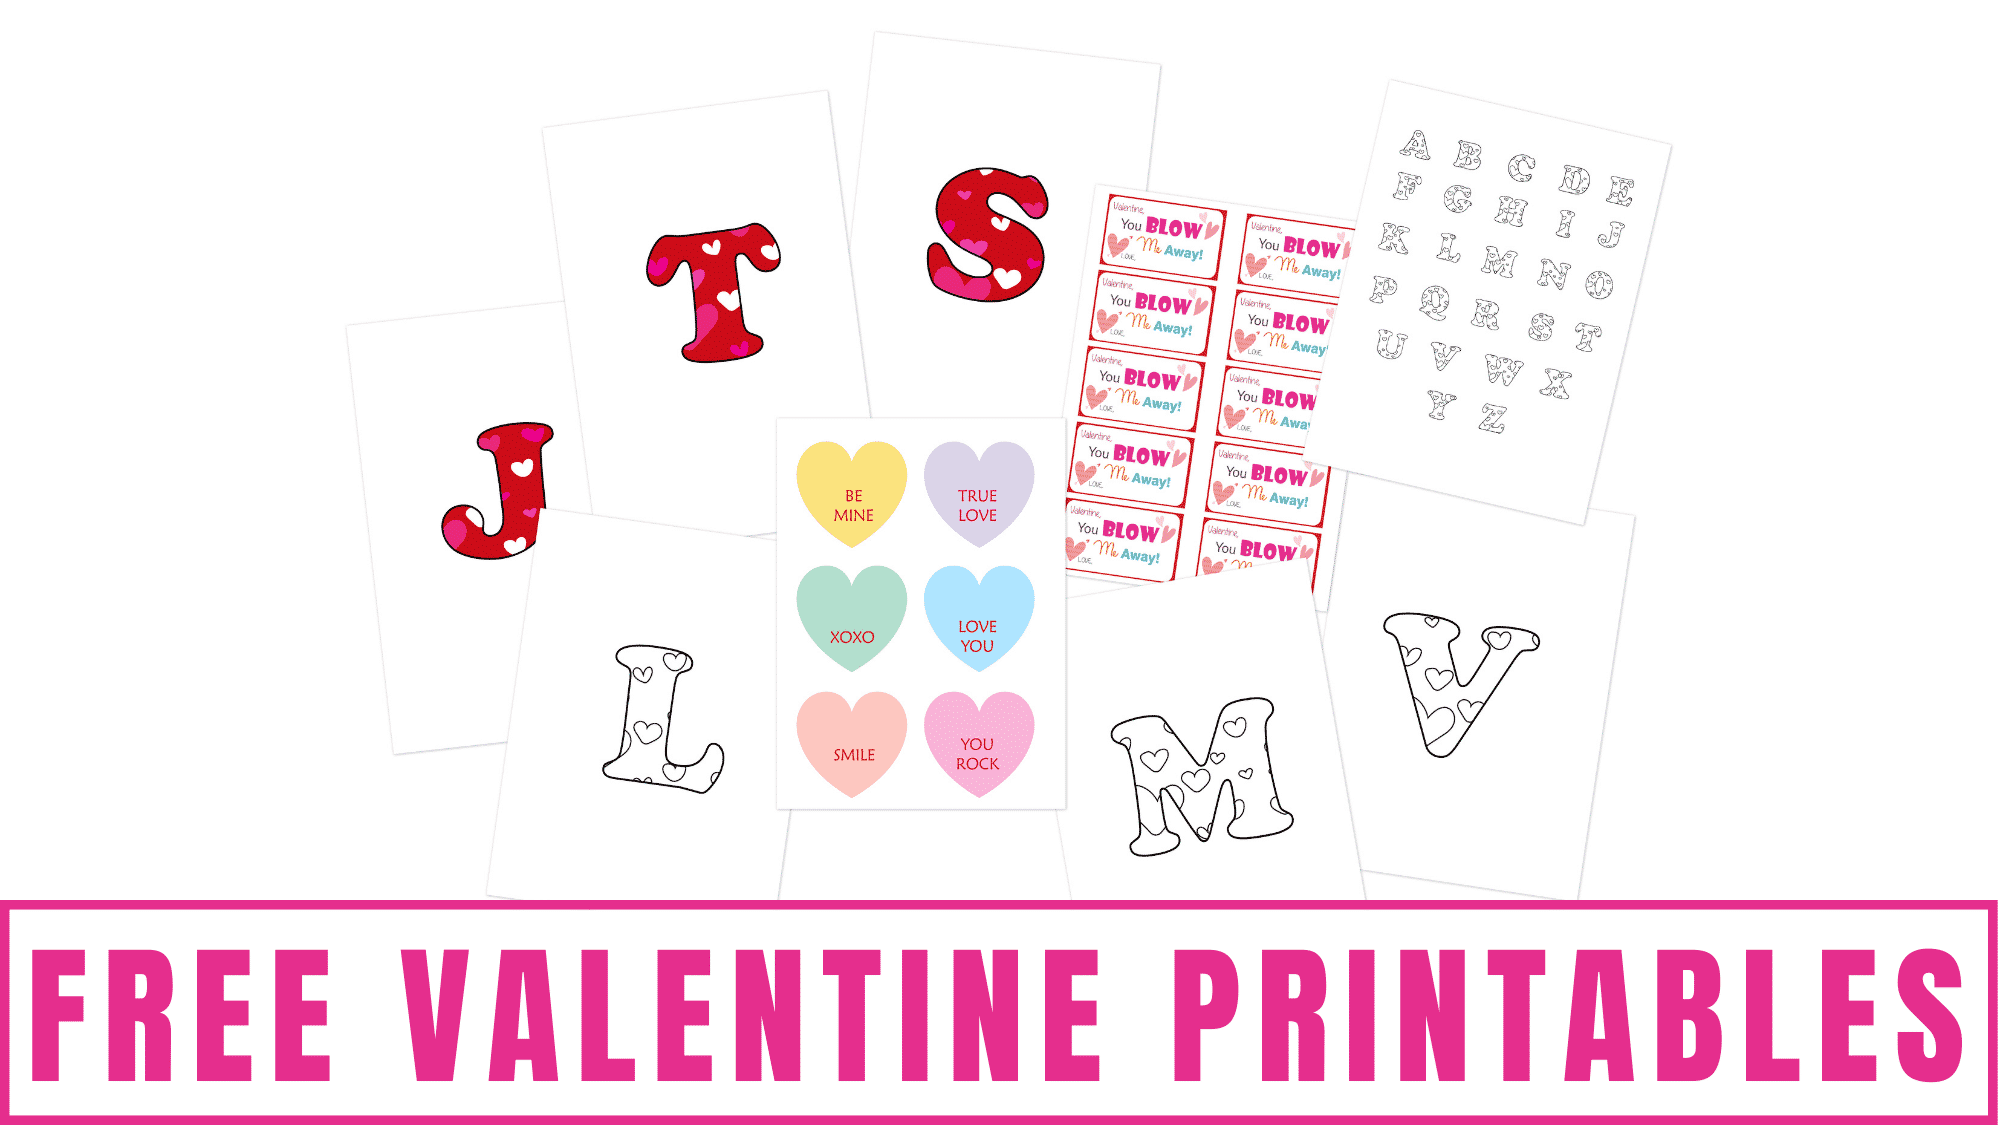 Here are several free Valentine printables that will help you get ready for the holiday and save money!